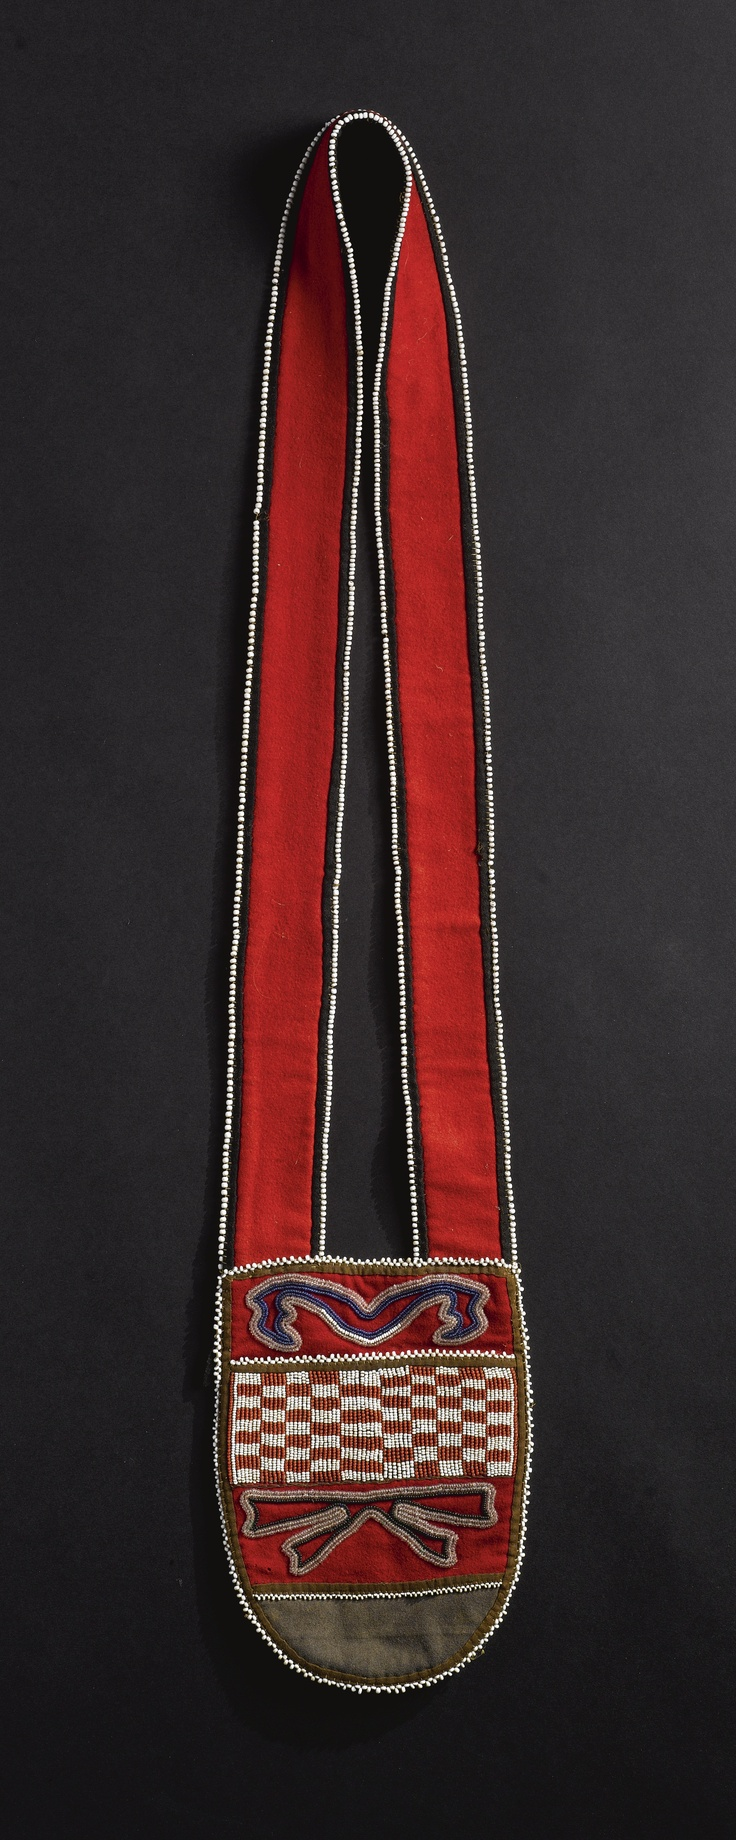 TALTAN BEADED CLOTH AND HIDE POUCH composed of a red stroud shoulder strap backed in commercial blanket cloth, an oval hide pouch suspended below, decorated with a loom-beaded panel in red and white glass beadwork, with rectangles, flanked by trade cloth applique with foliate designs. length with strap 29 1/2 in.